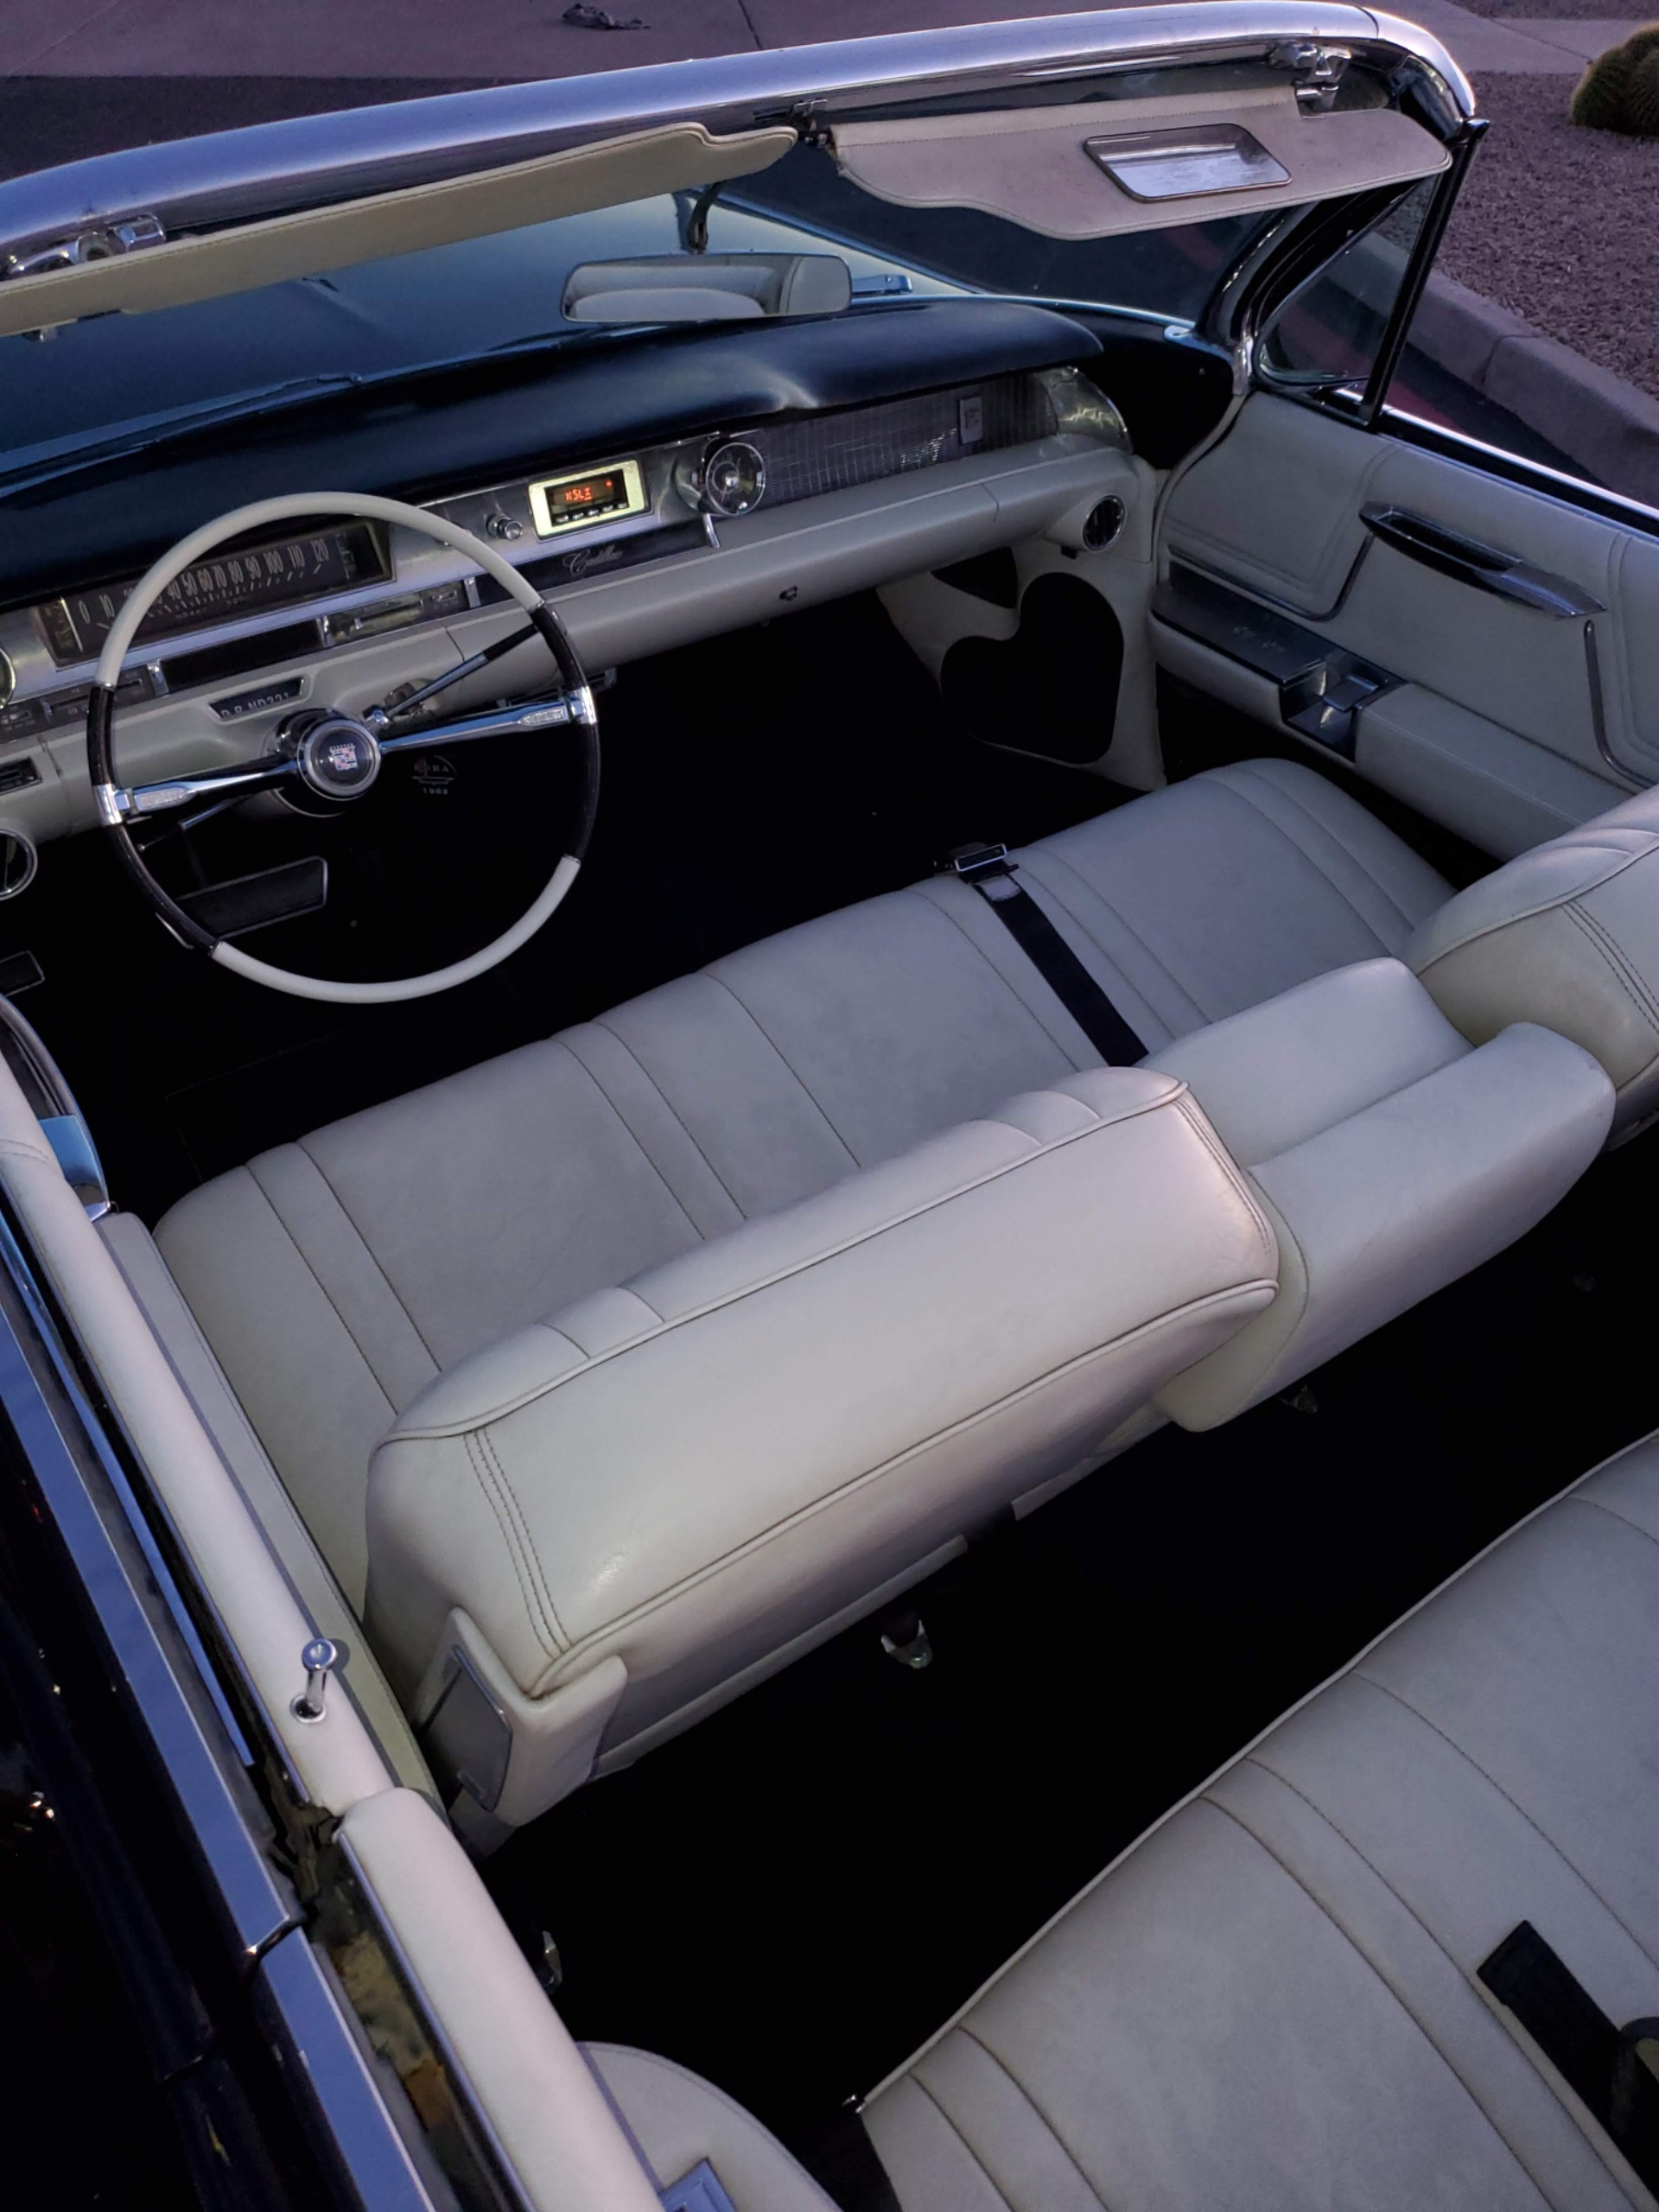 Used-1962-Cadillac-Series-62-Convertible-Mopar